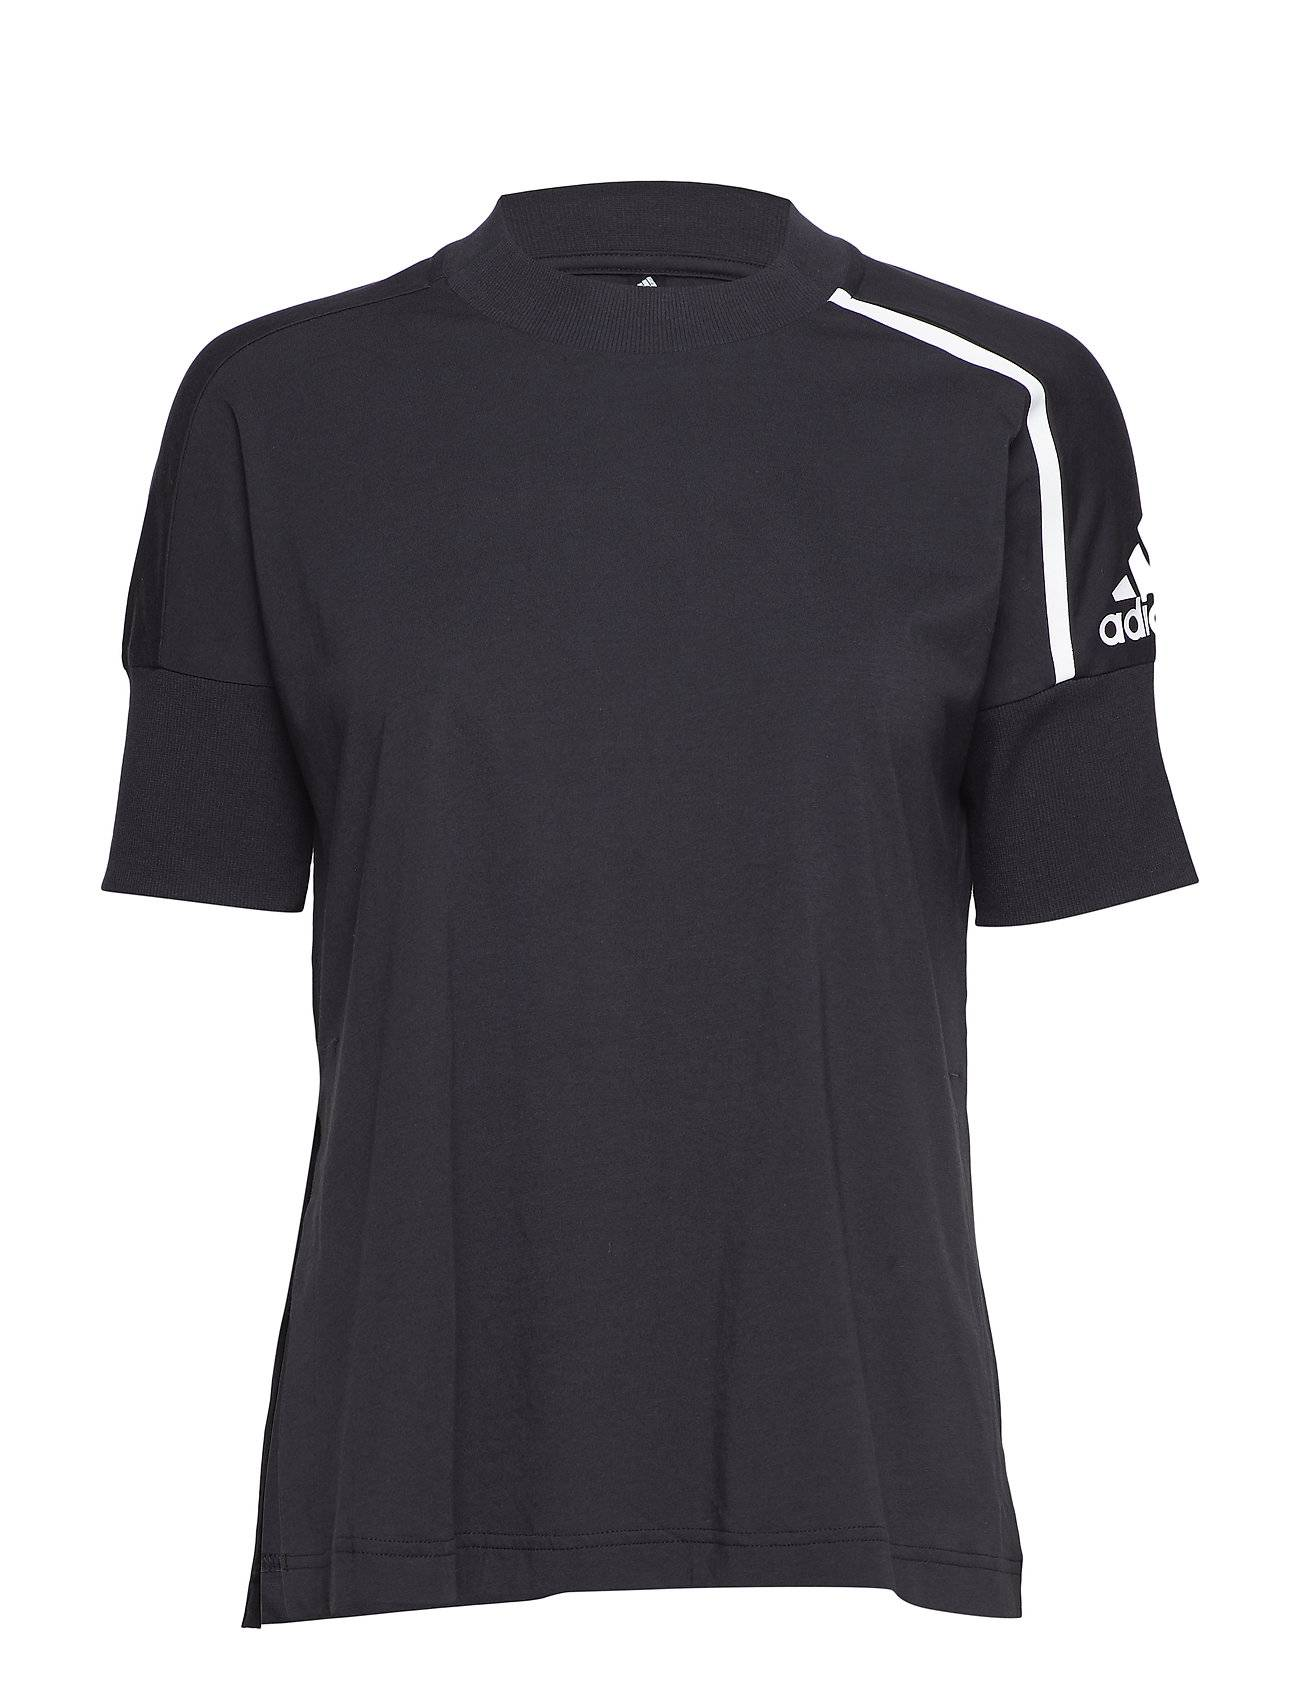 Image of adidas Performance W Zne Tee T-shirts & Tops Short-sleeved Musta Adidas Performance